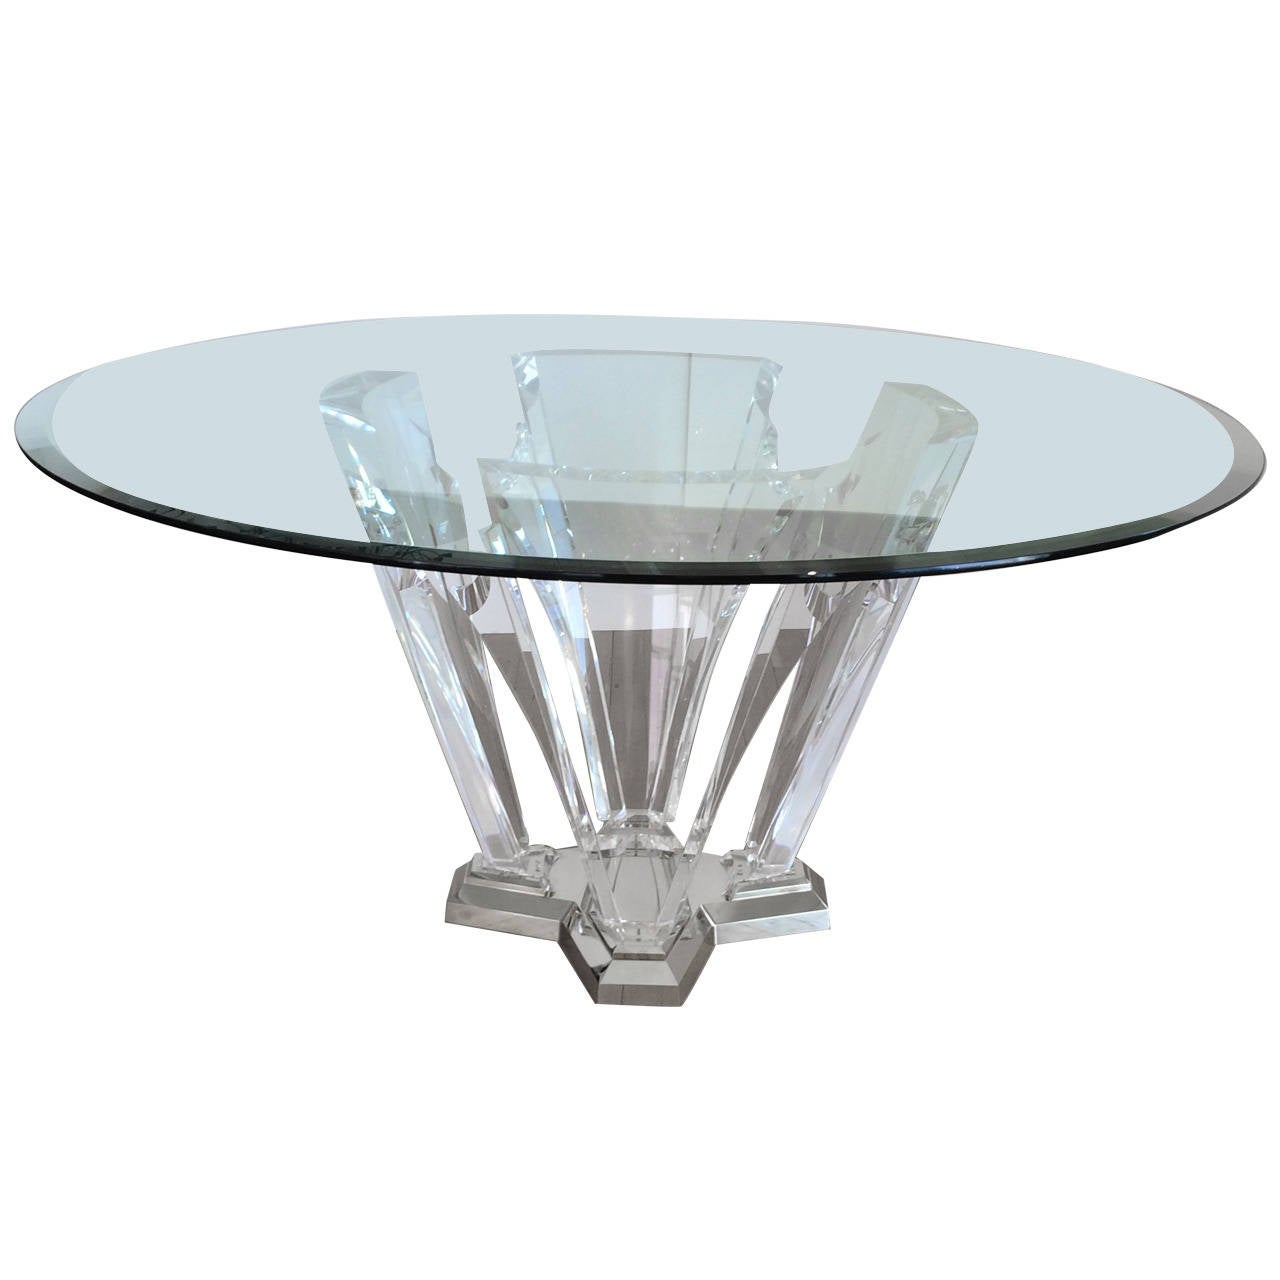 Acrylic and polished brass dining table by spectrum for Limited space dining table